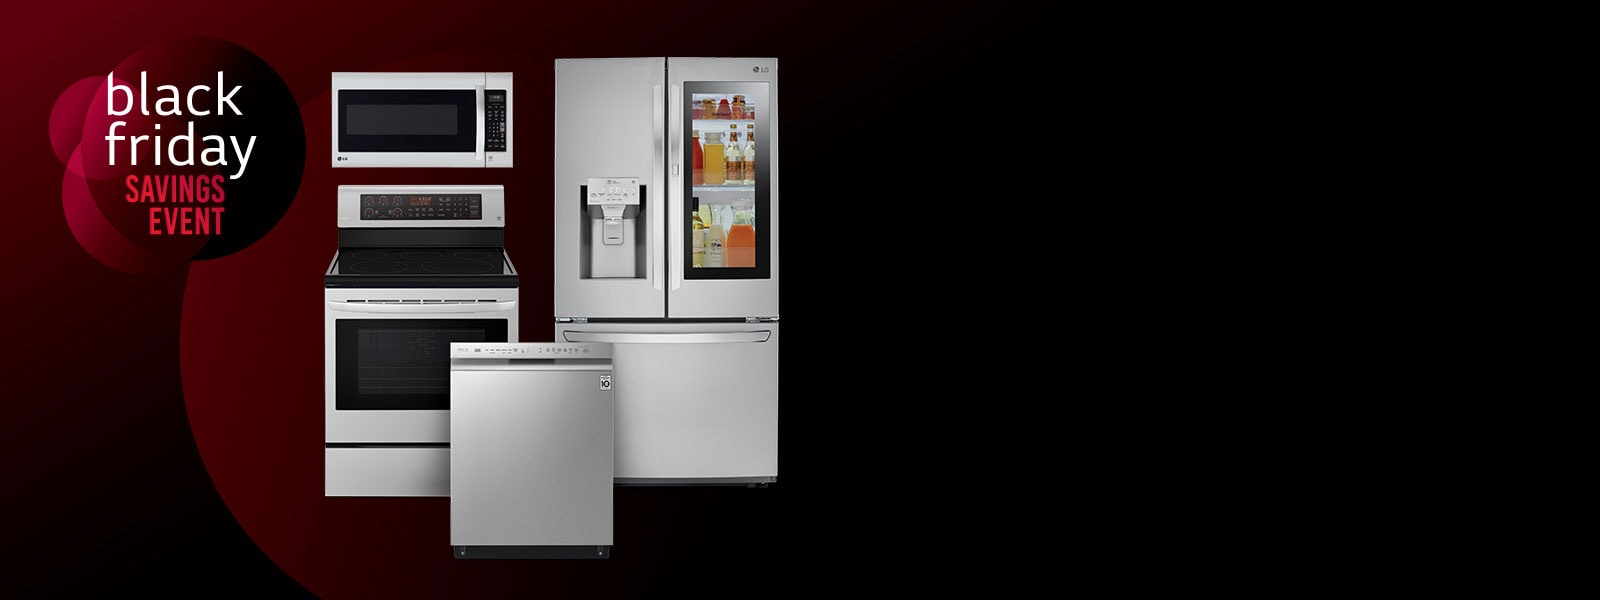 LG Appliance product collage on black background